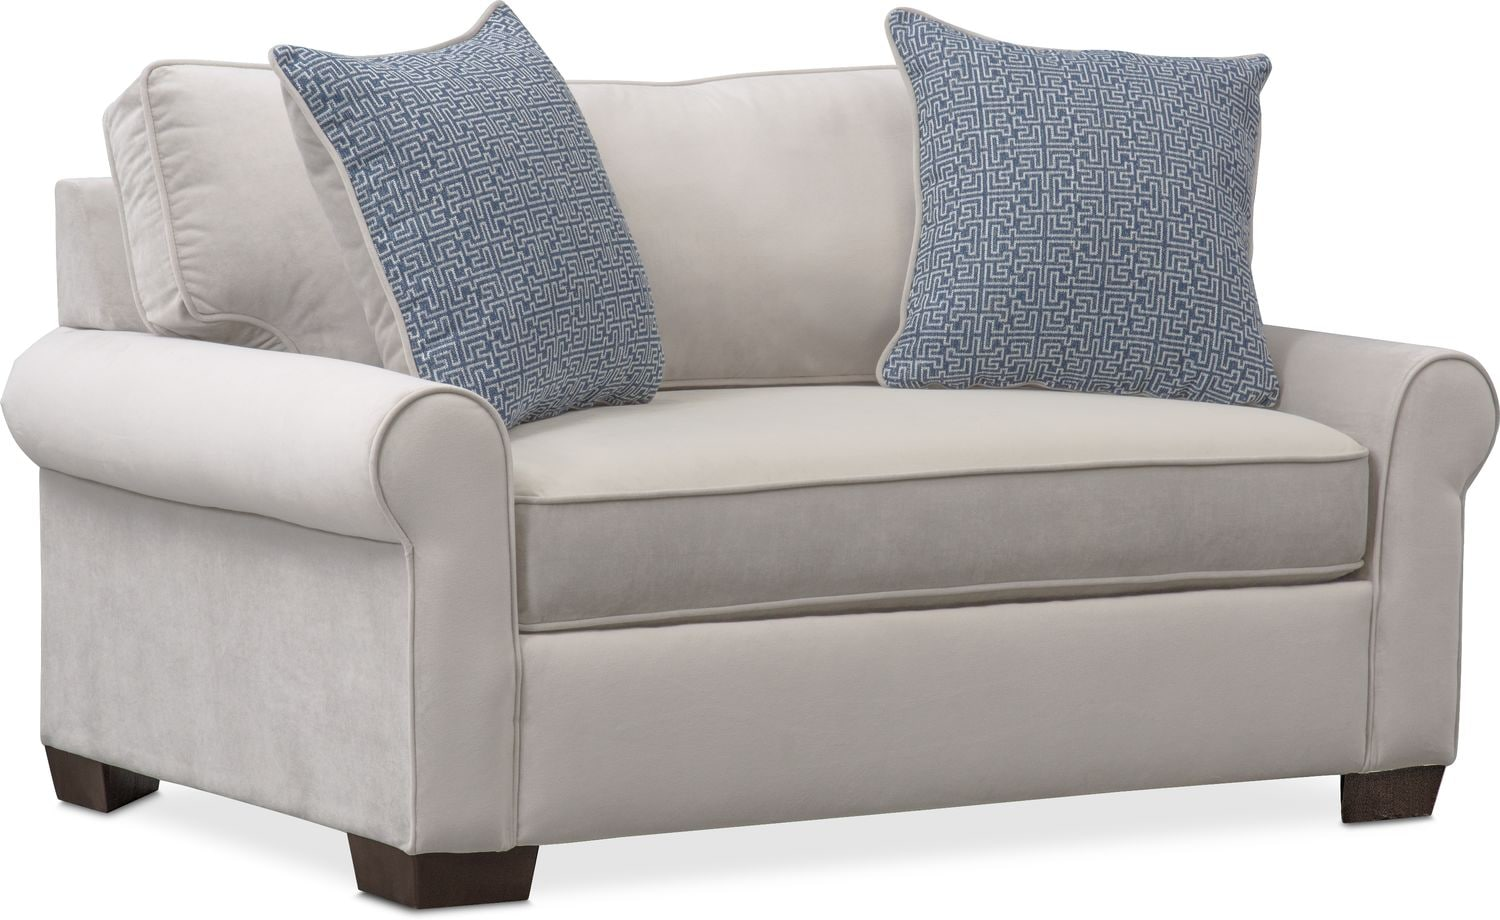 Superieur Living Room Furniture   Blake Twin Memory Foam Sleeper Chair And A Half    Gray